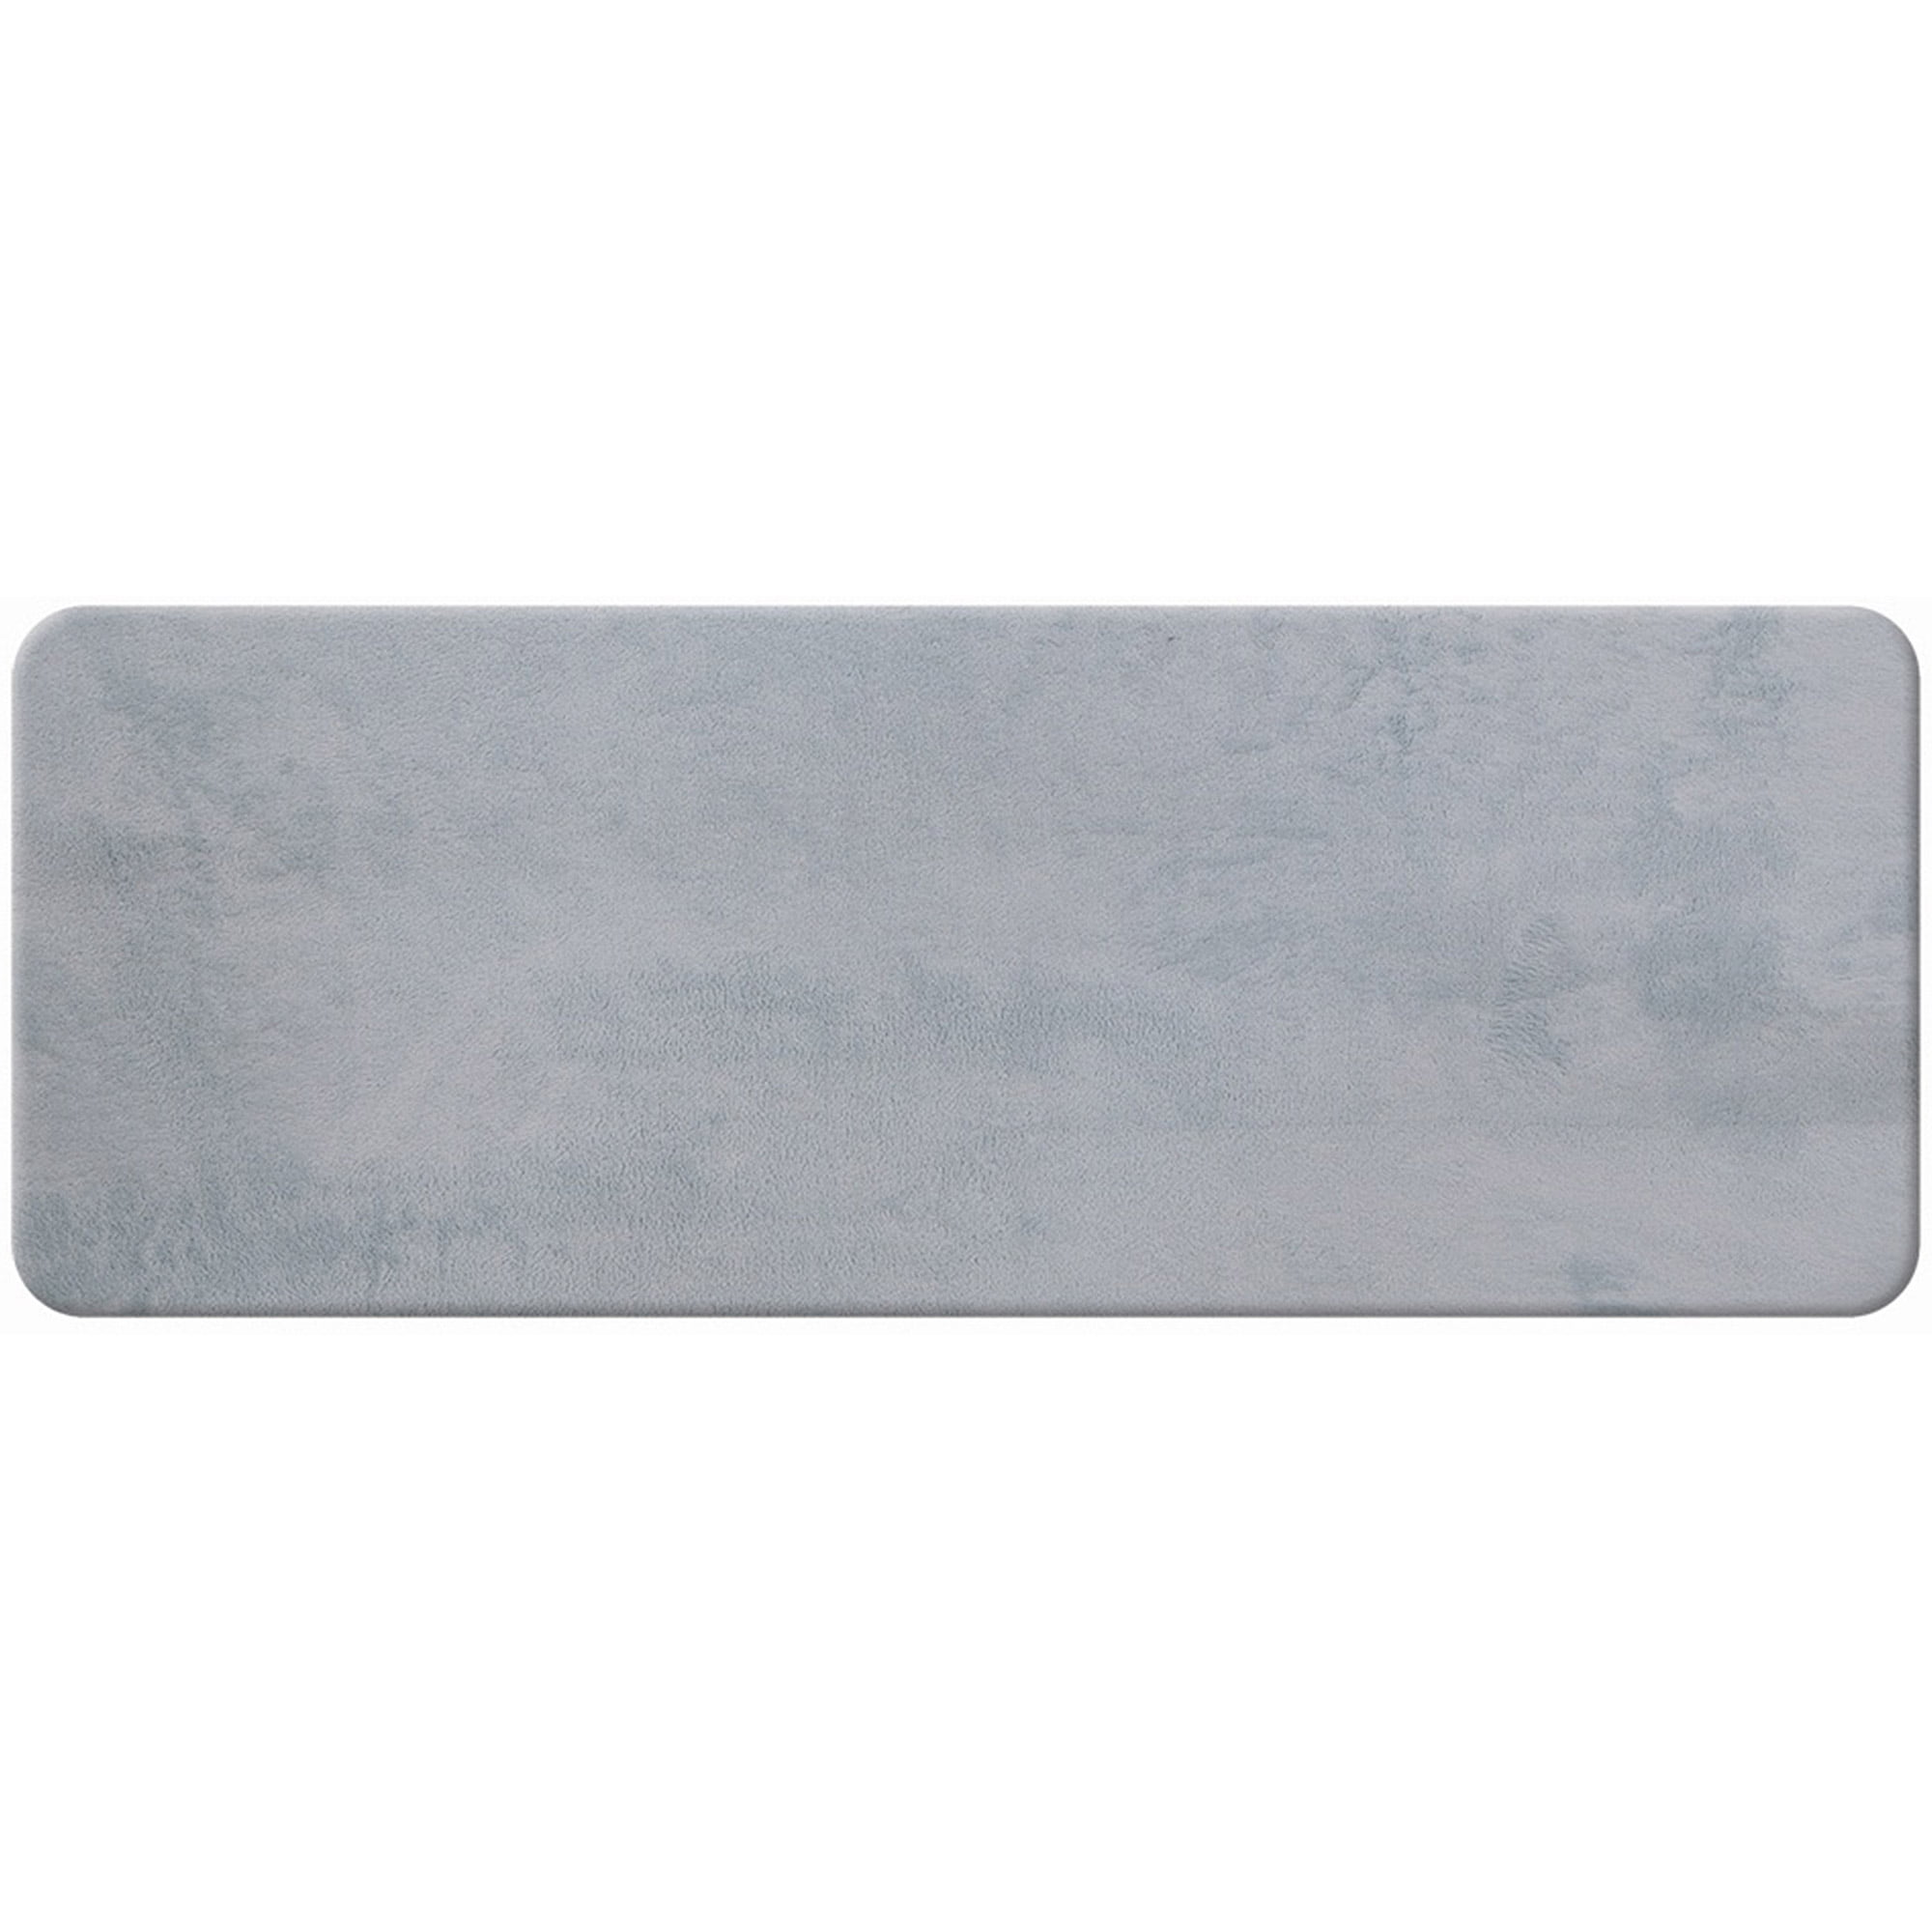 Etonnant Comfort Co. Sleep Innovations The Mat Memory Foam Bath Runner